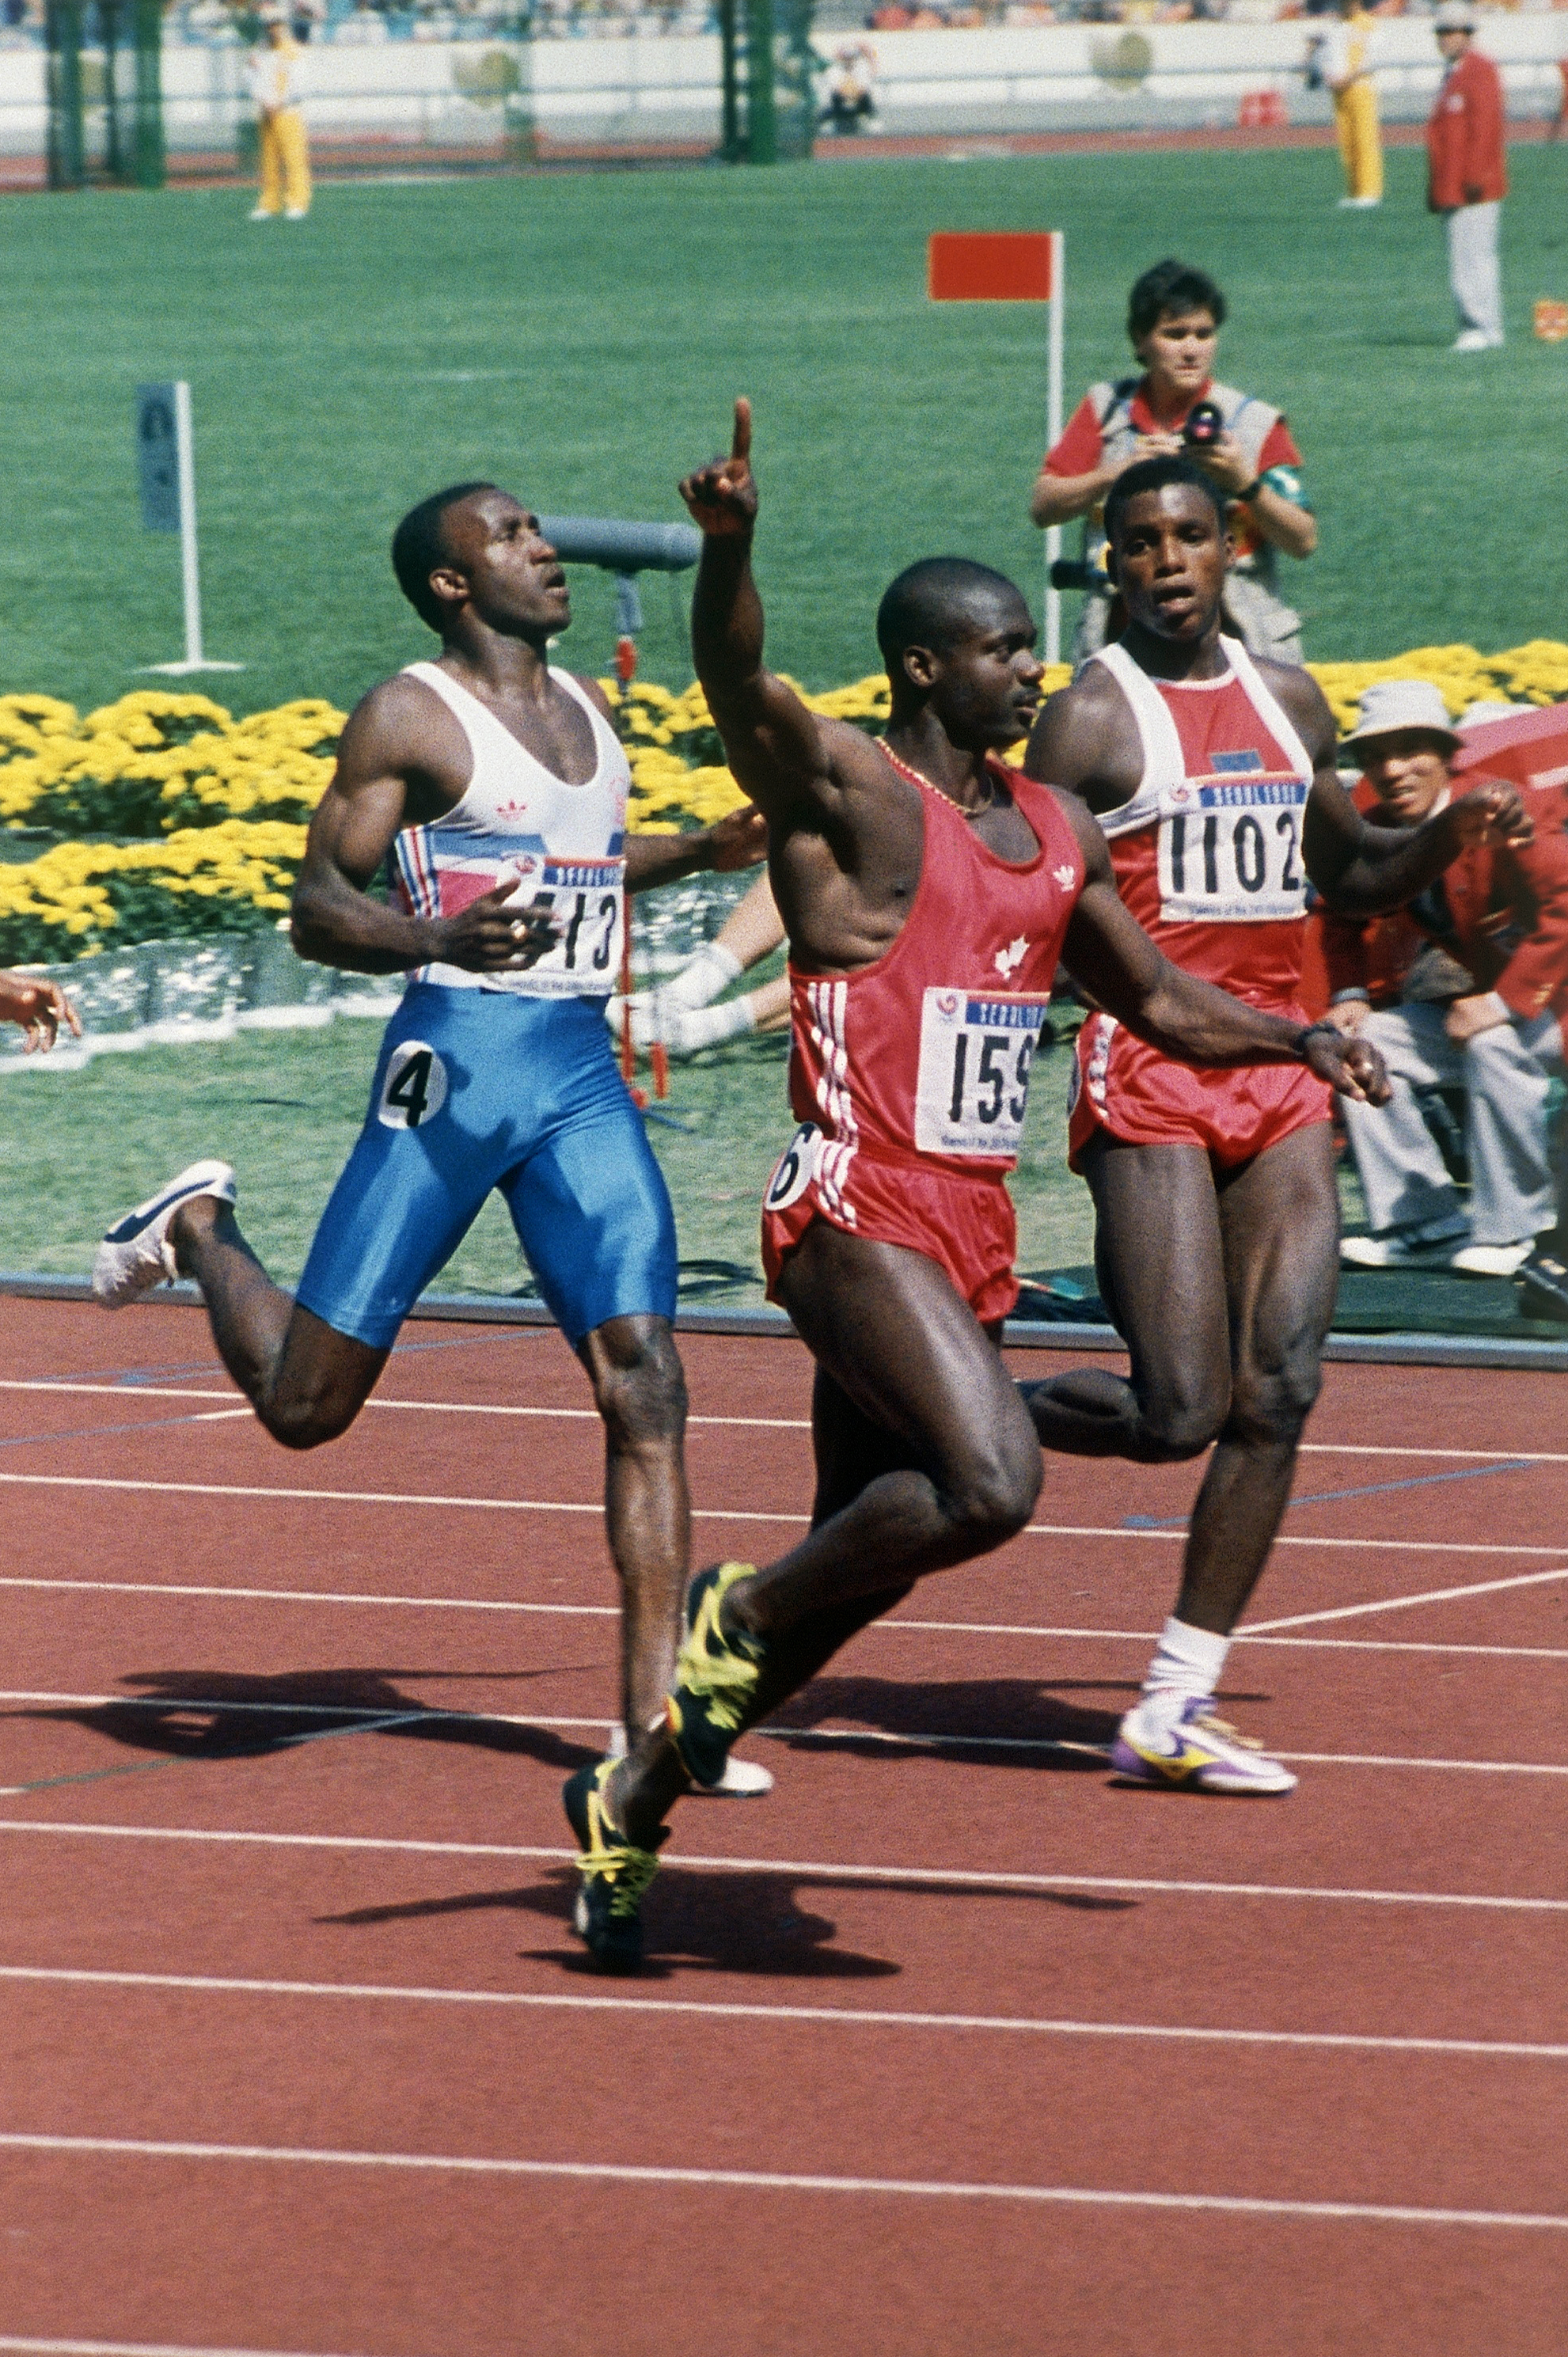 FILE - In this Sept. 24, 1988 file photo Ben Johnson of Canada gestures after winning the 100-meter dash beating Carl Lewis of the United States, behind at right at the Olympics in Seoul. The International Olympic Committee withdrew Johnson's gold medal f